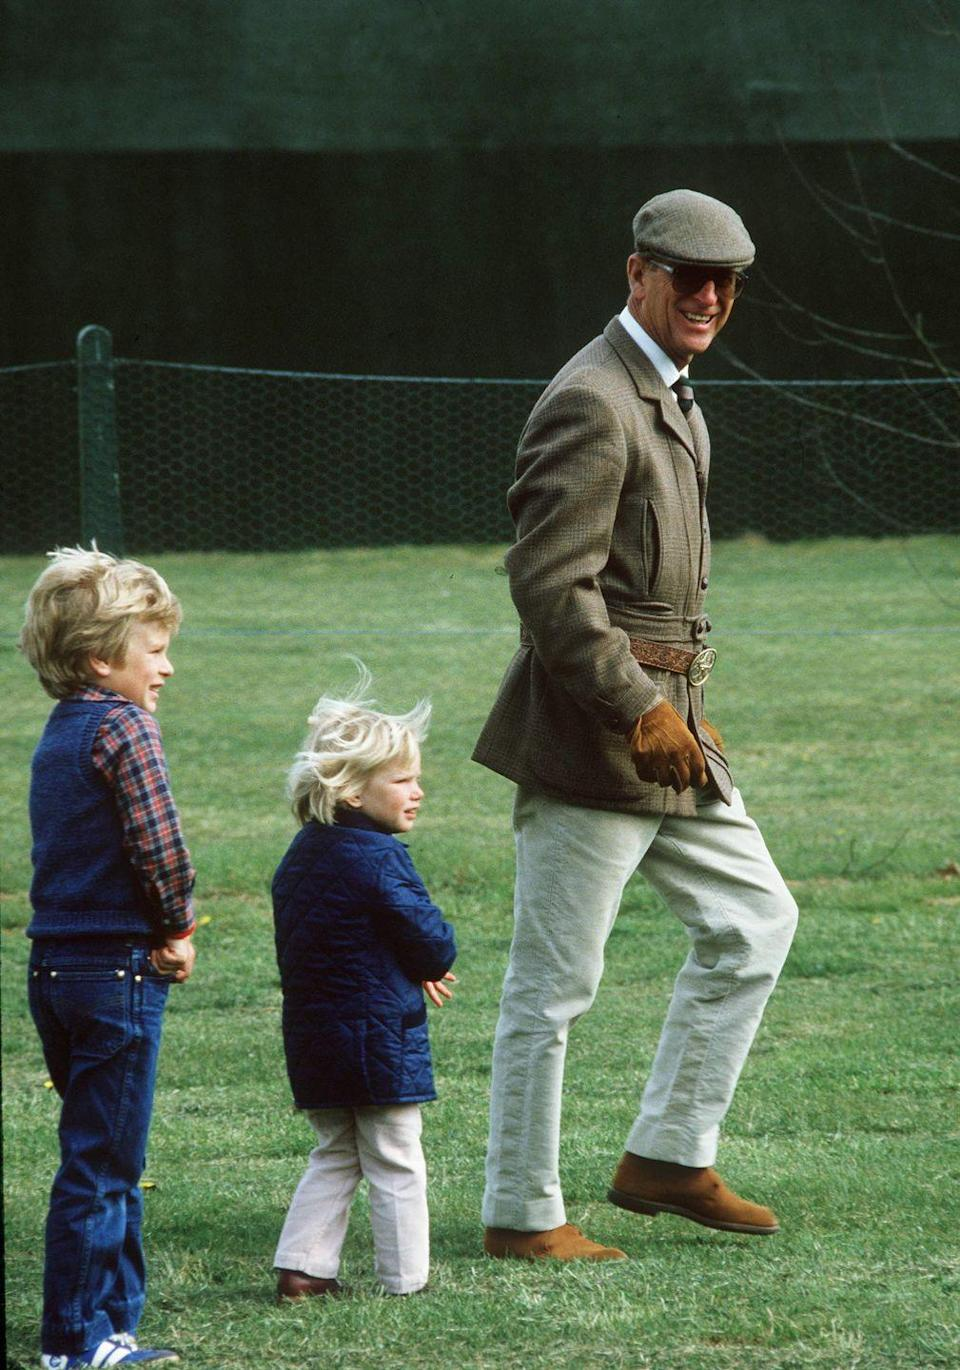 """<p>Prince Philip became a grandfather for the first time when Peter Phillips is born. Princess Anne would later give birth to his first granddaughter, <a href=""""https://www.goodhousekeeping.com/life/a20685936/zara-phillips-full-name/"""" rel=""""nofollow noopener"""" target=""""_blank"""" data-ylk=""""slk:Zara Phillips"""" class=""""link rapid-noclick-resp"""">Zara Phillips</a>, on May 15, 1981.</p>"""